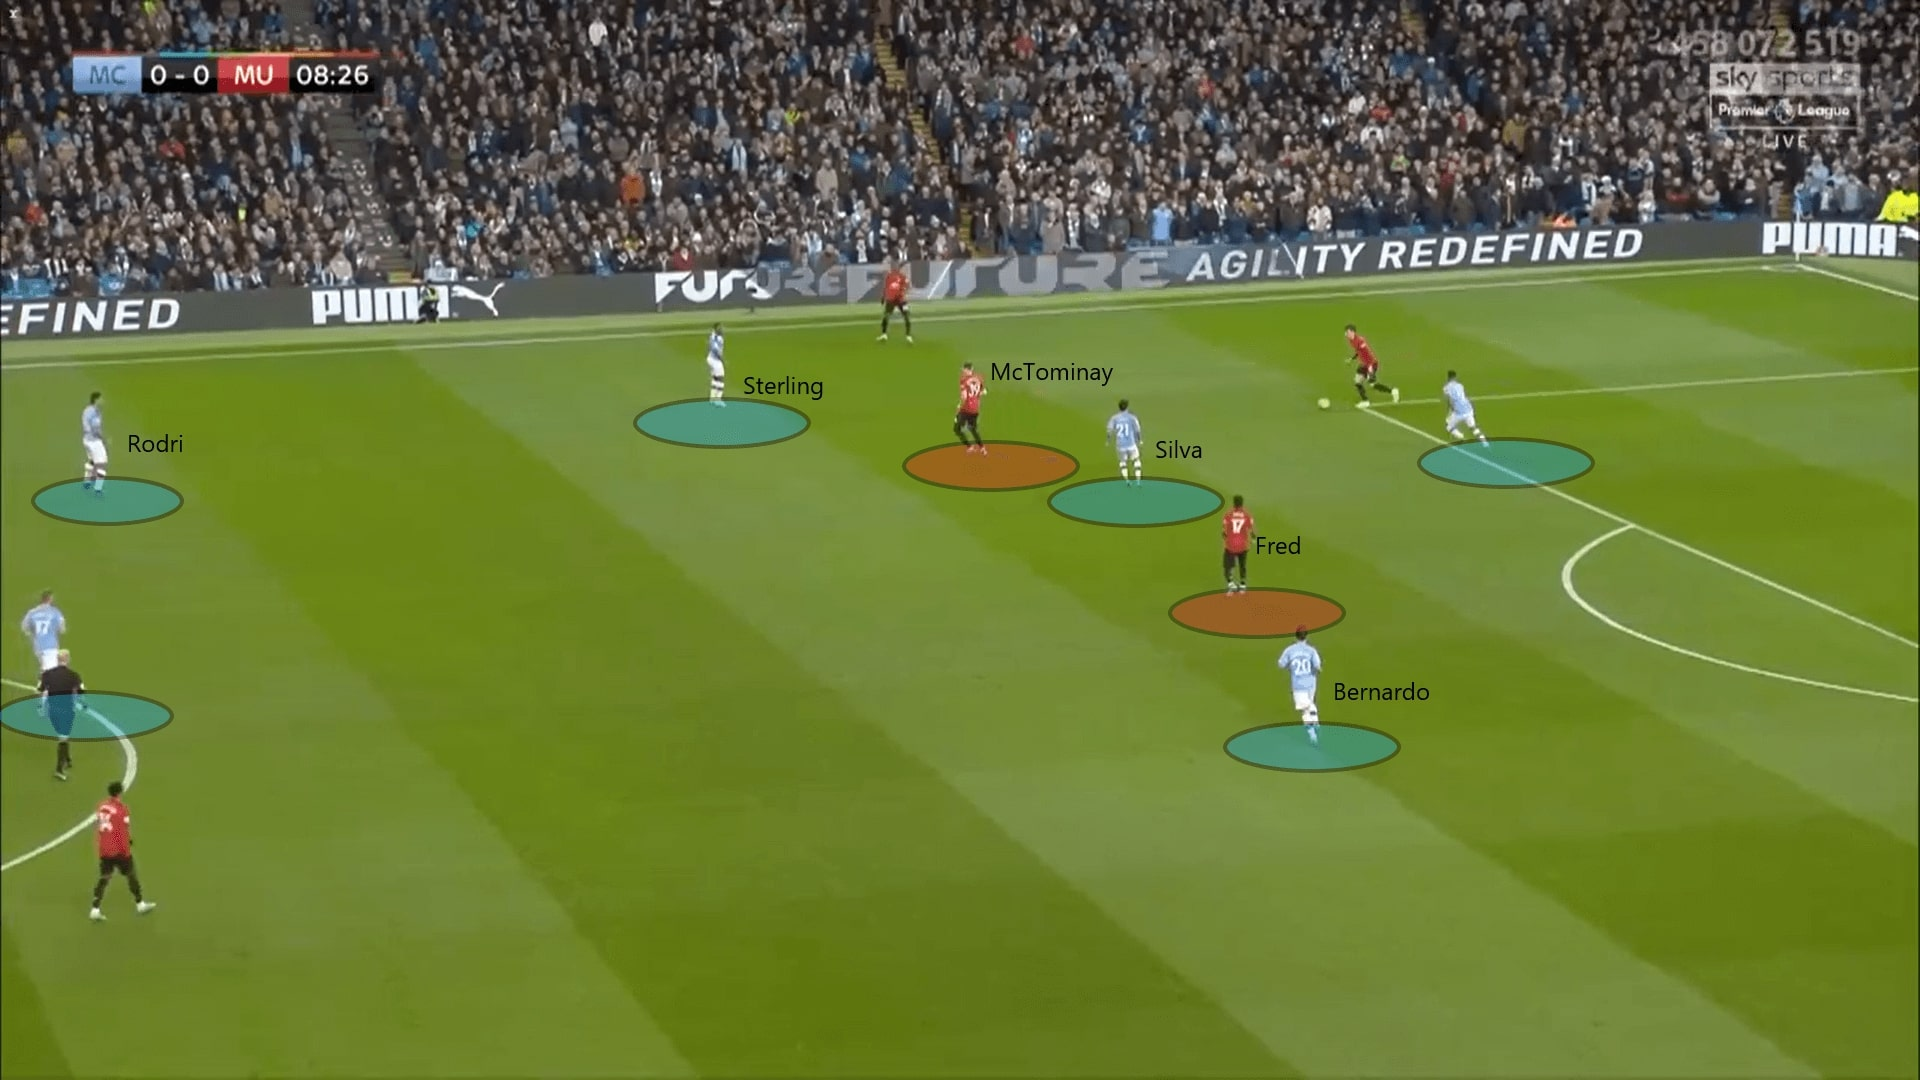 UEFA Champions League 2019/20: Real Madrid vs Manchester City - tactical preview on how City can benefit from a back three tactics